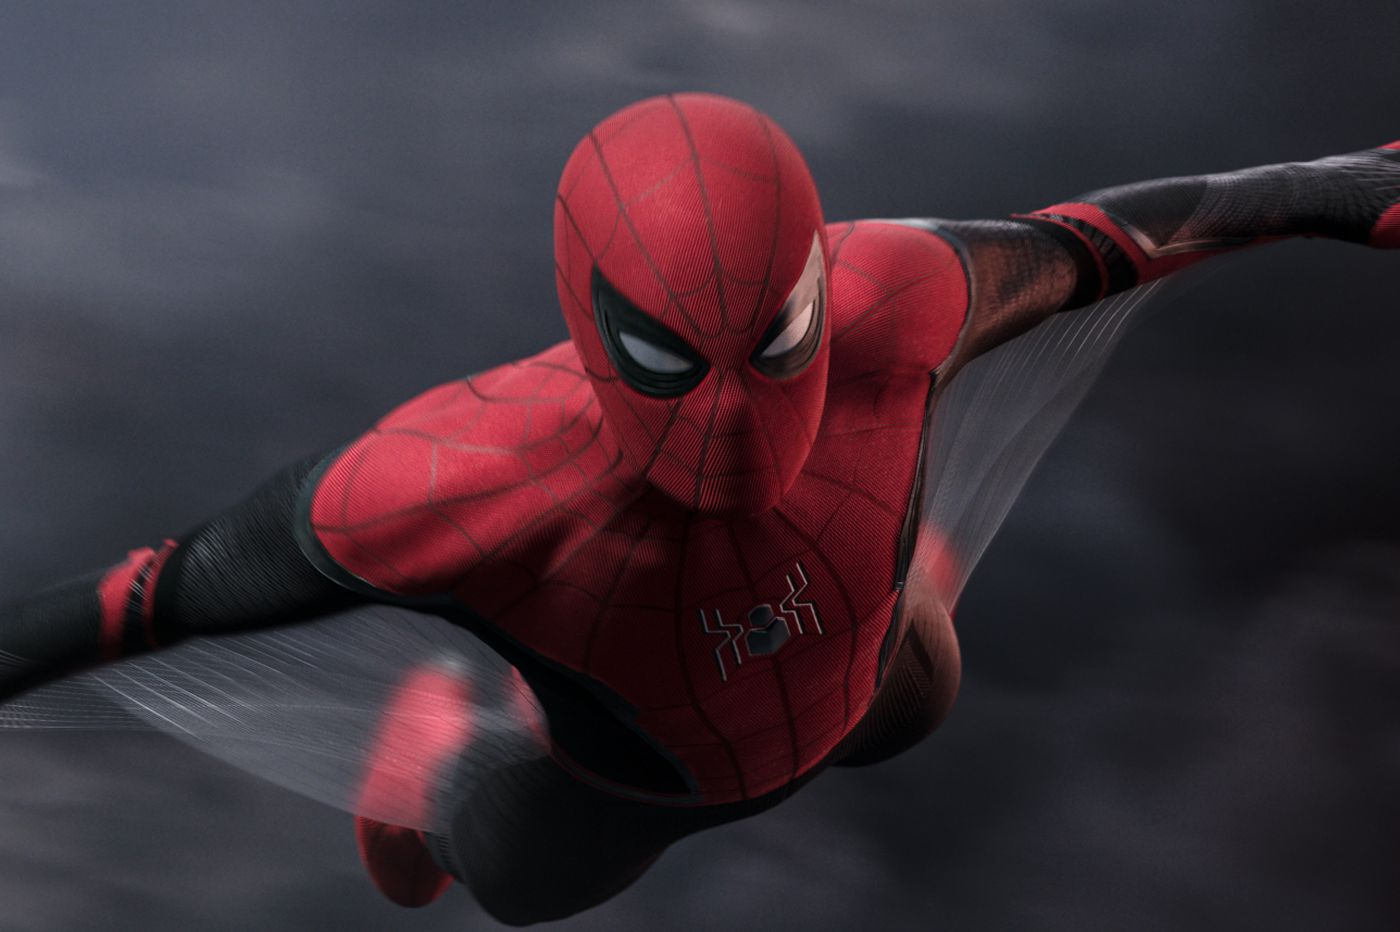 The amazing spider science of 'Spider-Man: Far From Home'